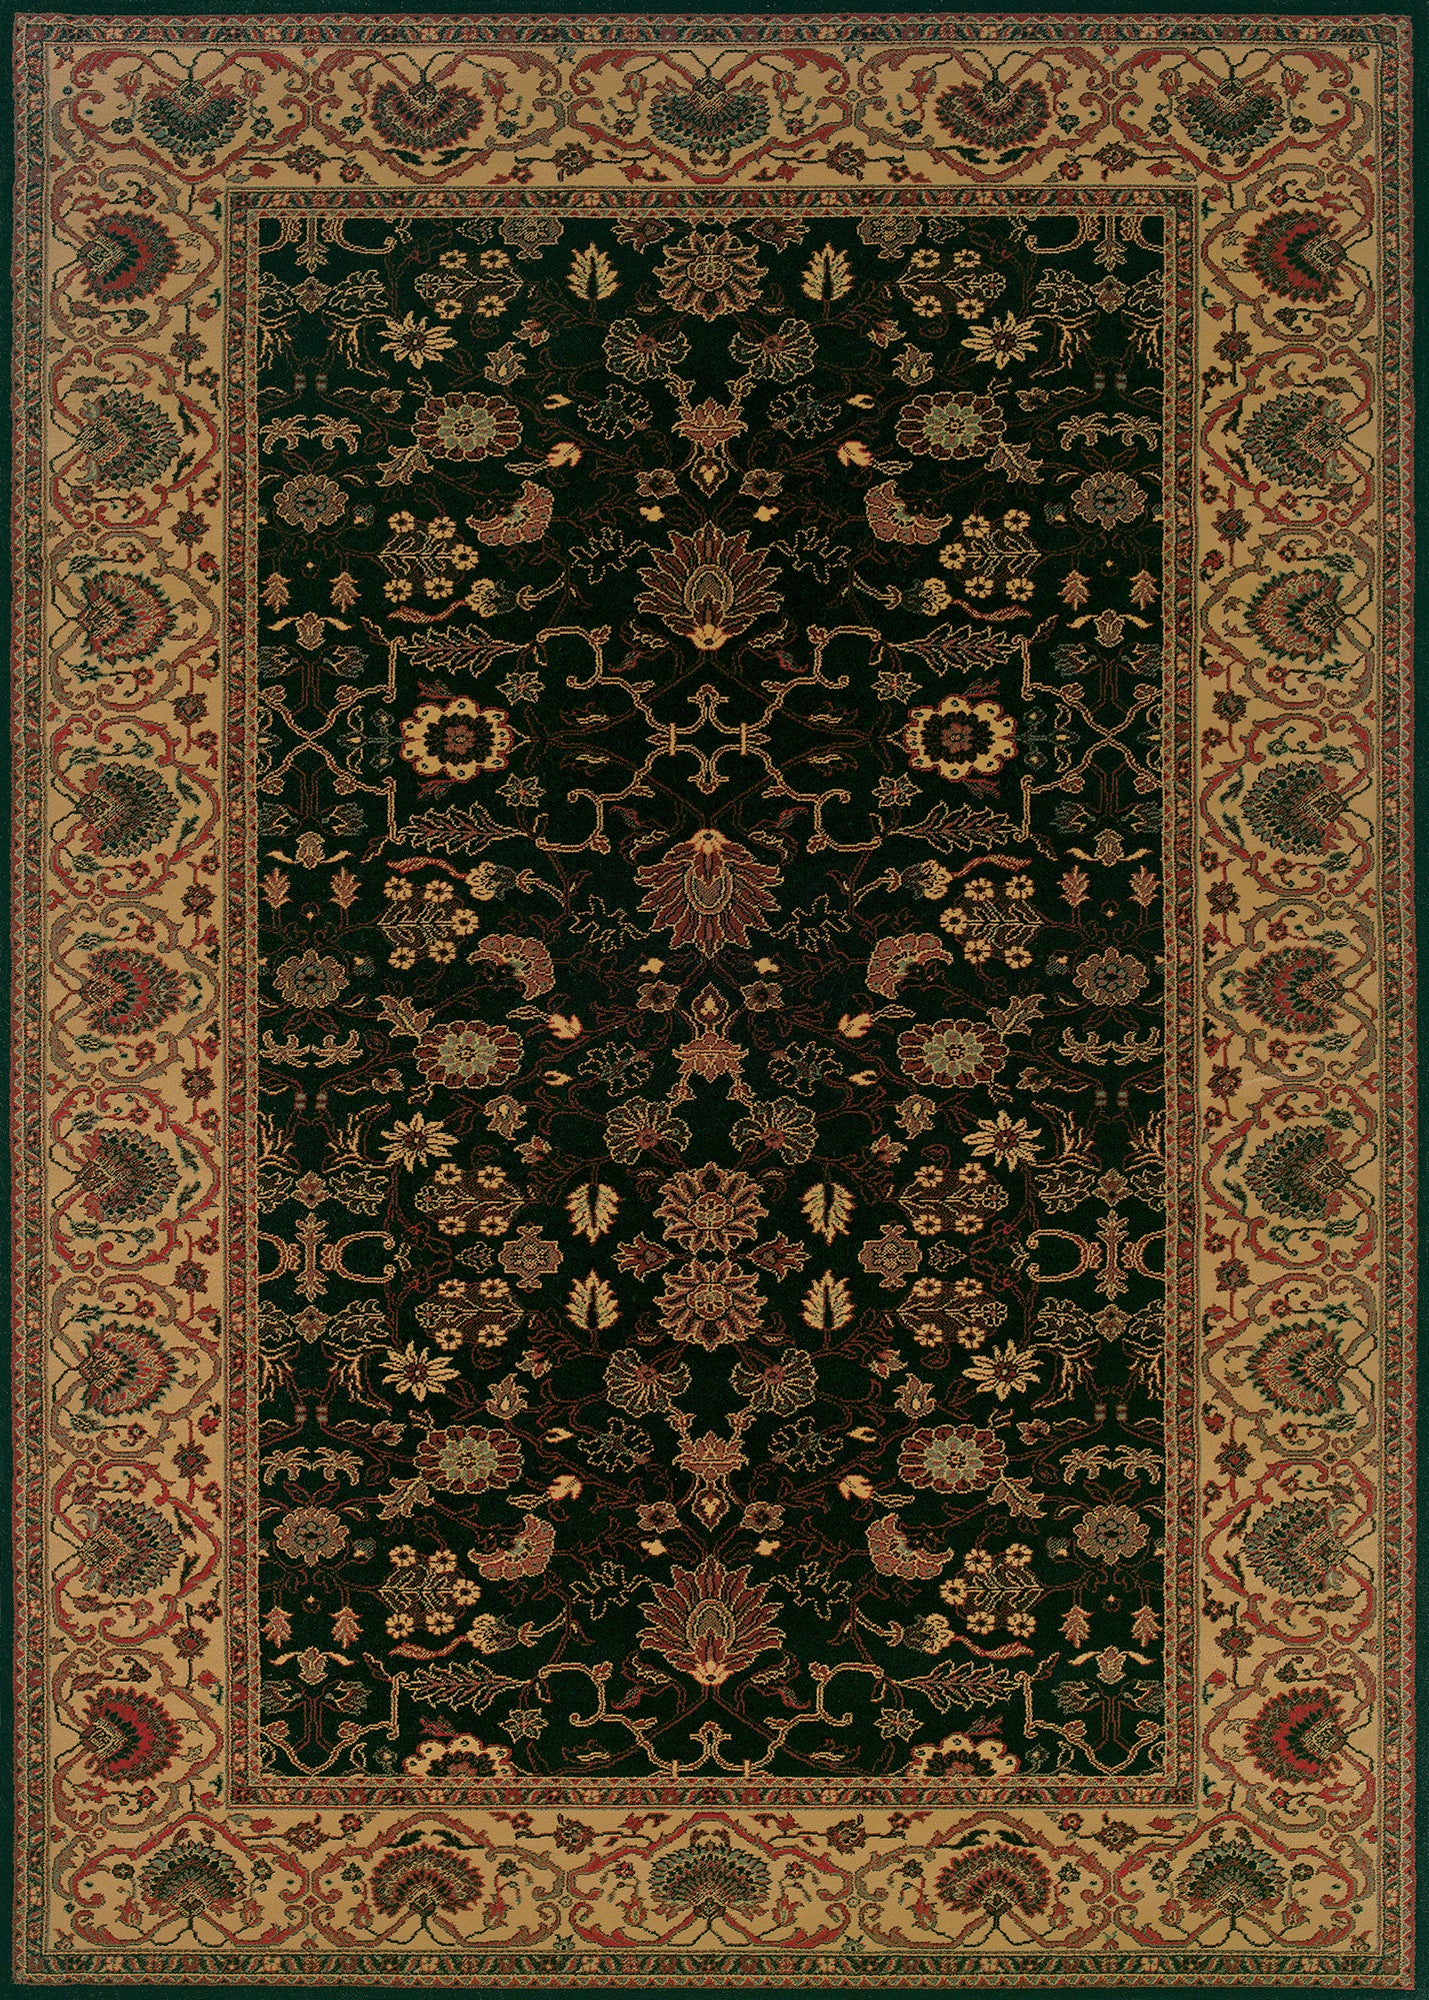 Couristan Everest Rug Collection Incredible Rugs And Decor